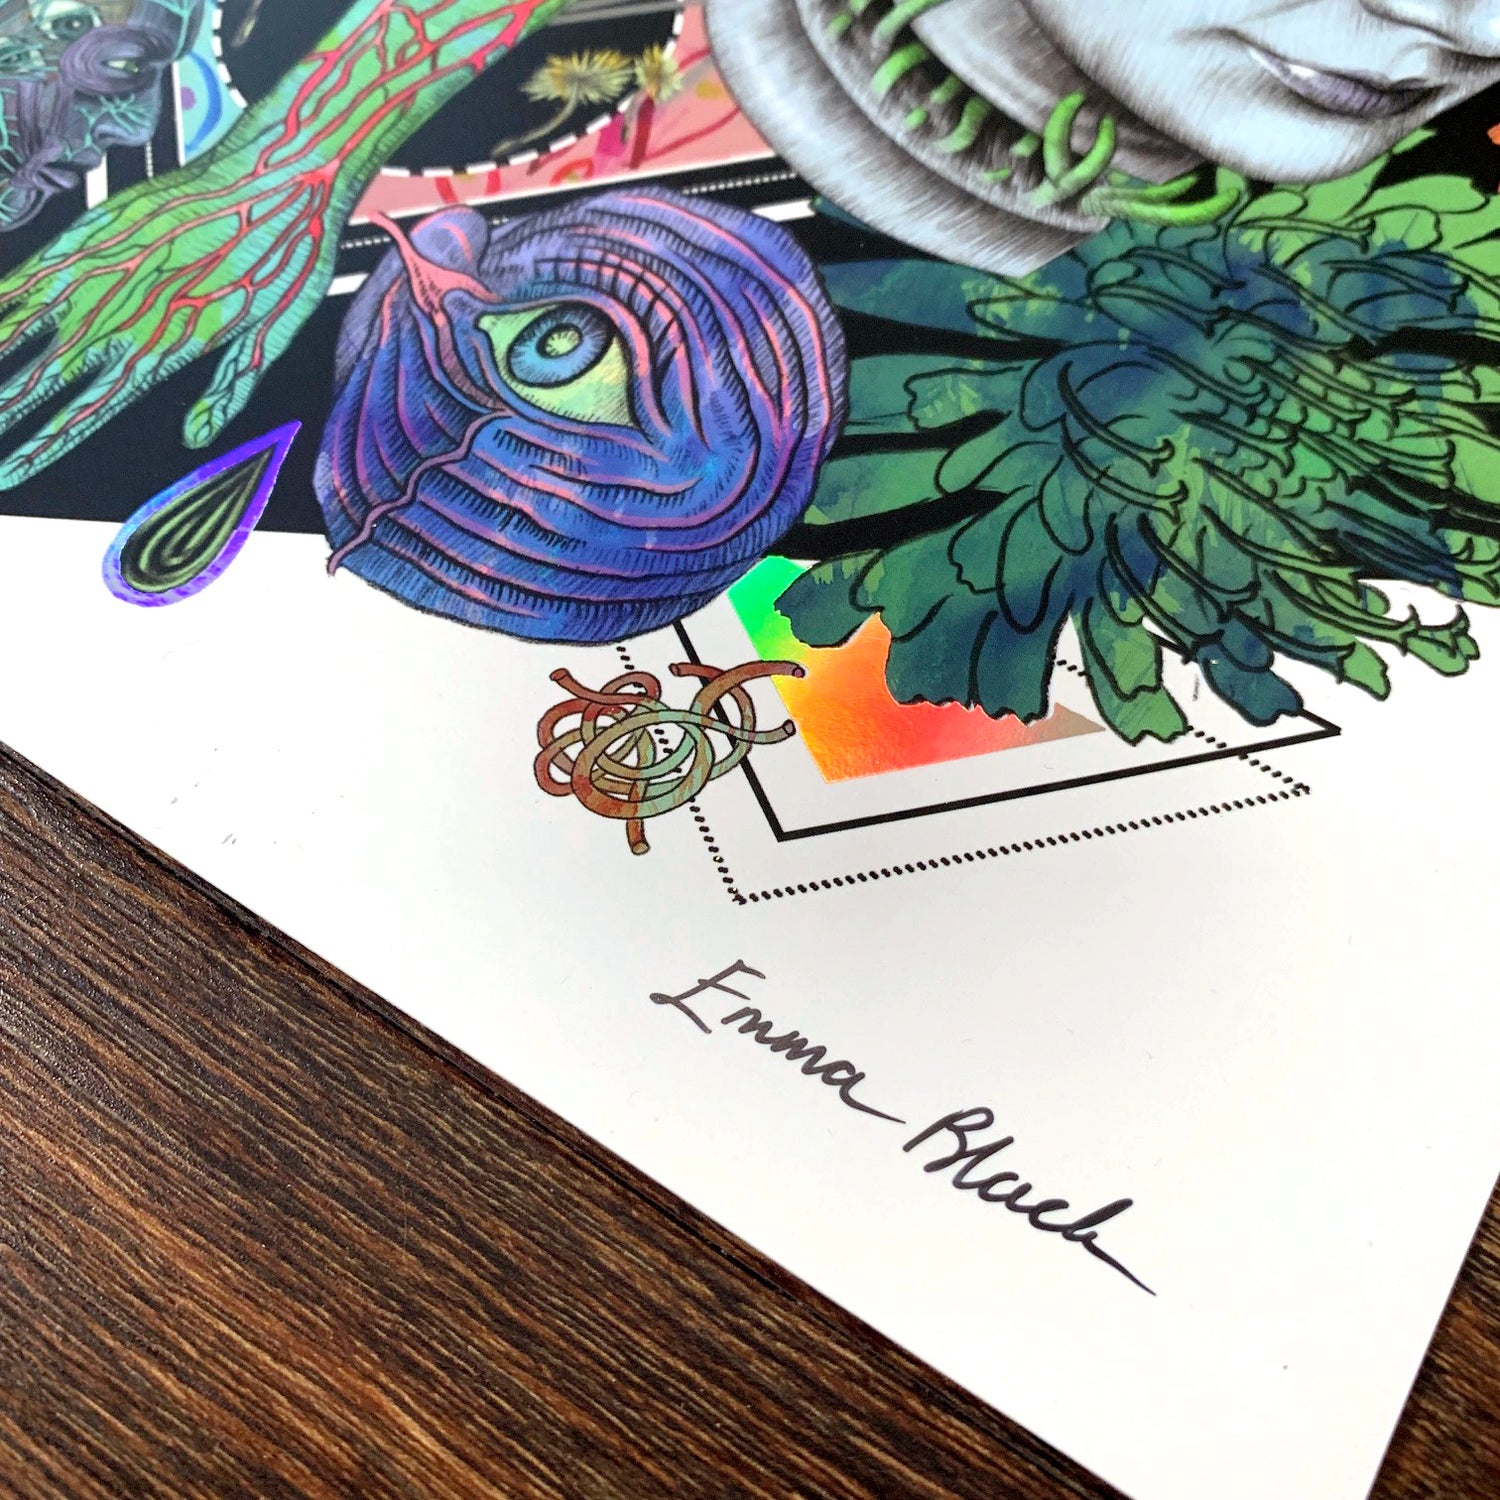 Image of Limited Edition 'The Incomplete Ascension' Holographic Rainbow Foiled Art Print